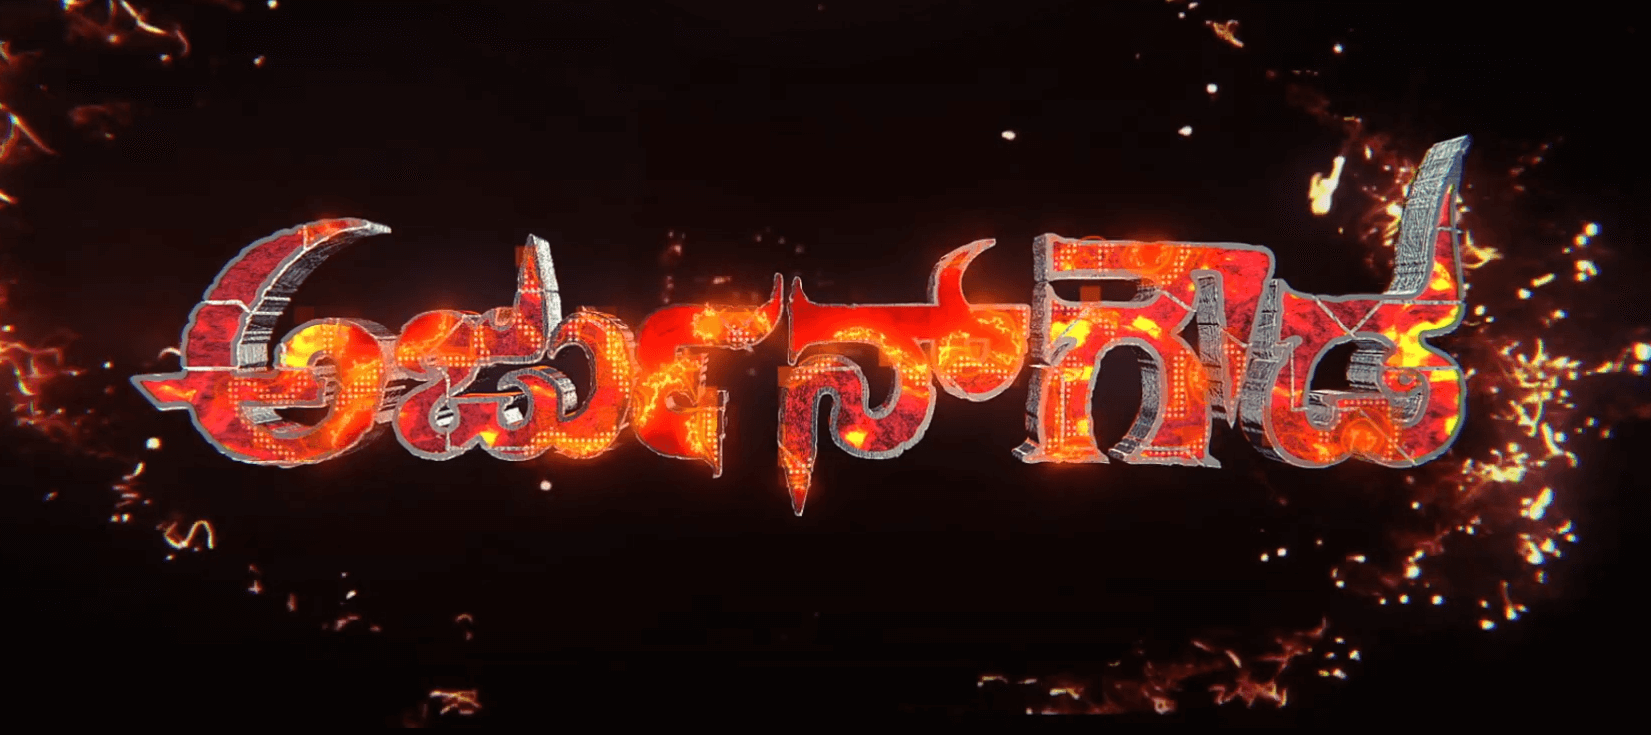 Arjun Gowda Kannada Movie